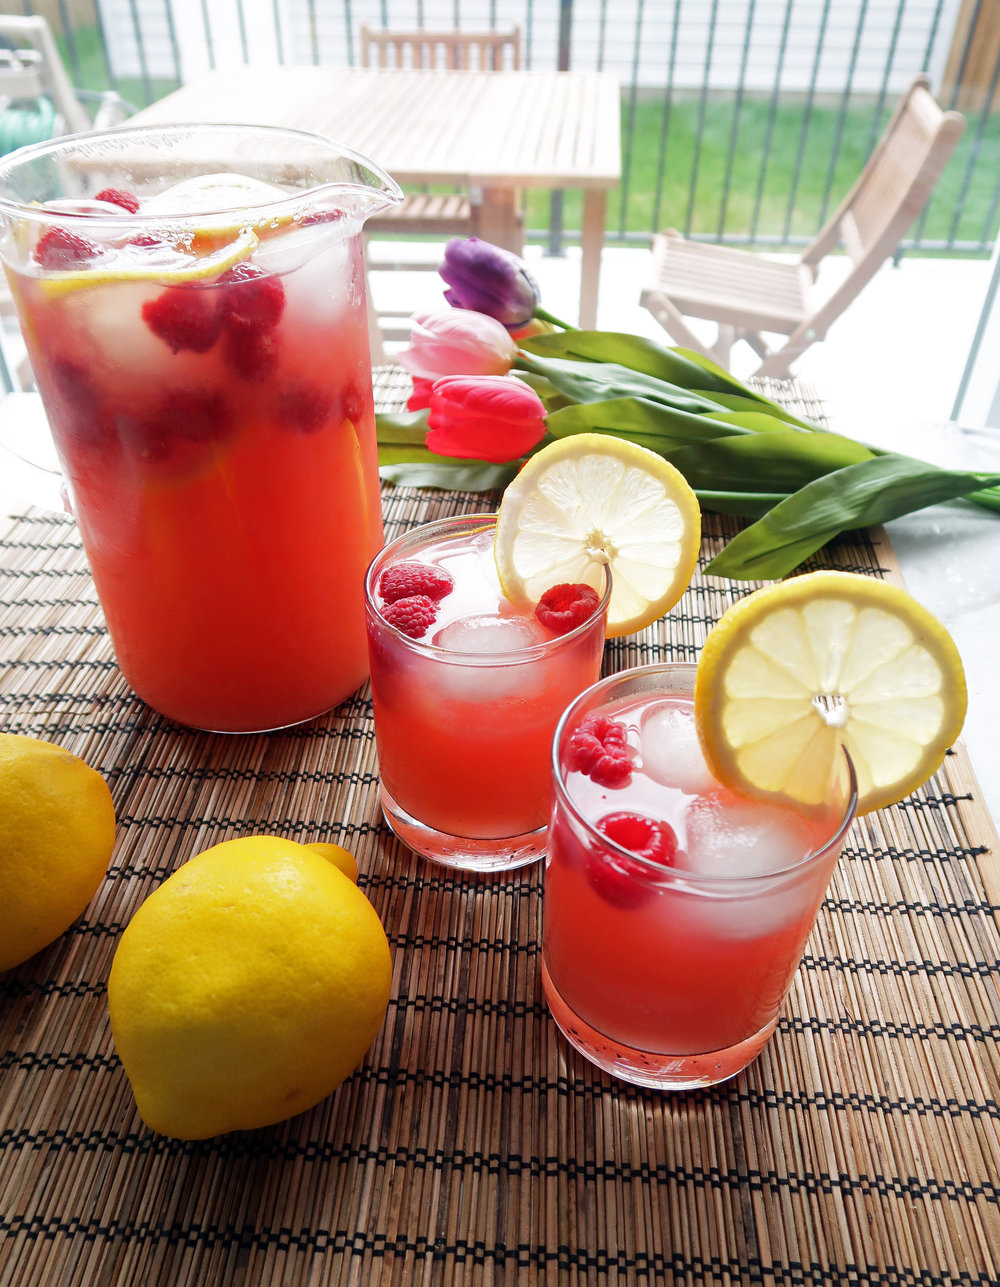 Homemade Raspberry Green Tea Lemonade: A simple, easy, and refreshing cold drink for summer. www.yayforfood.com